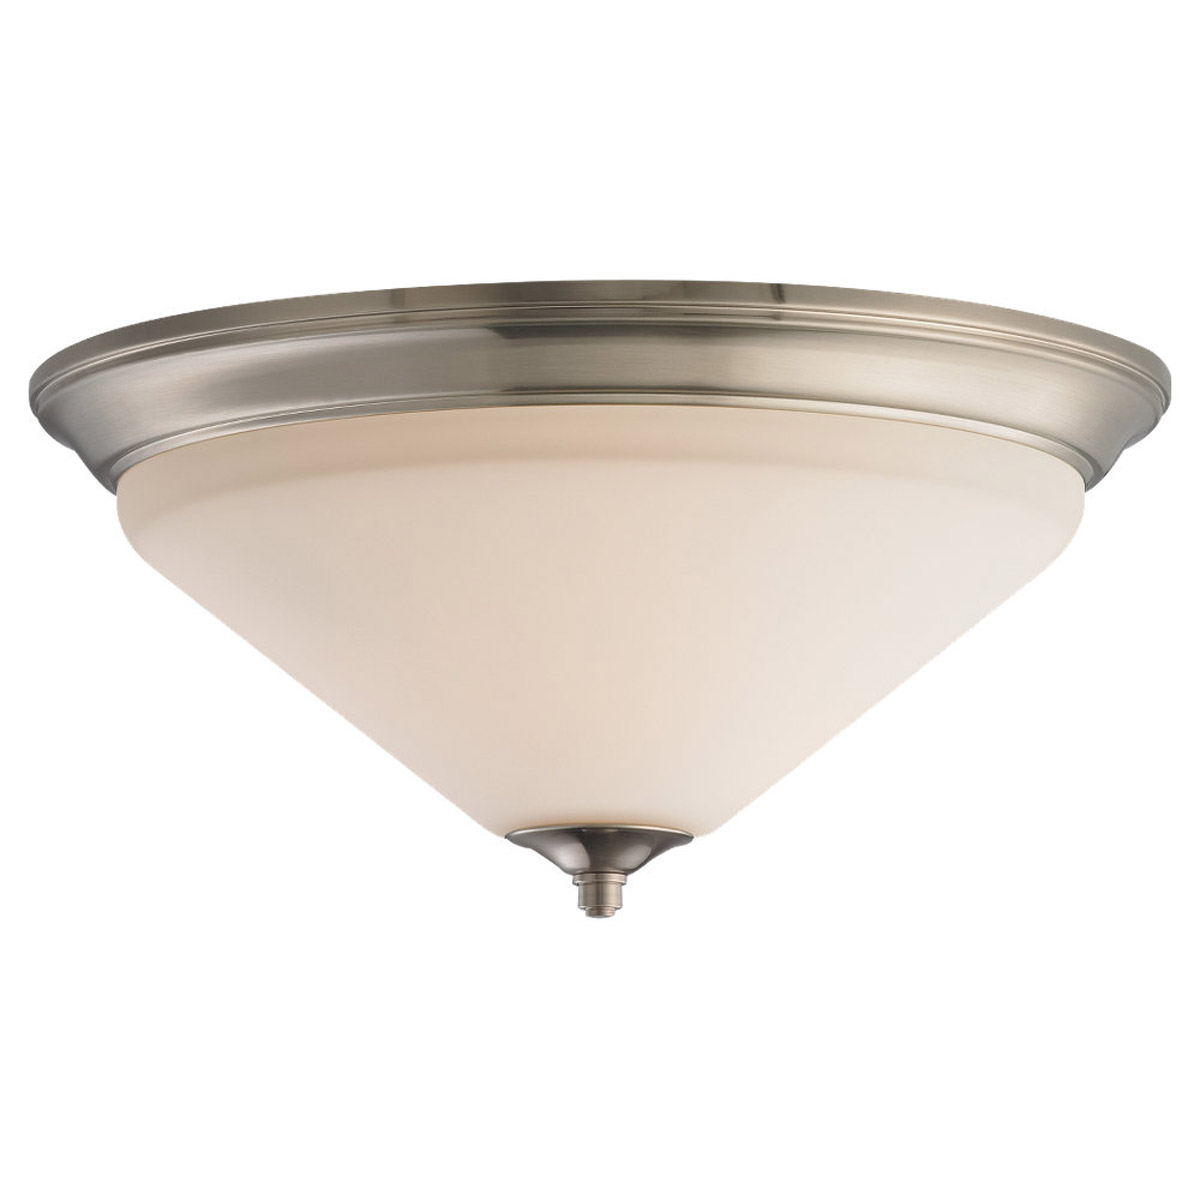 Sea Gull Lighting Belair 3 Light Flush Mount in Brushed Nickel 75791-962